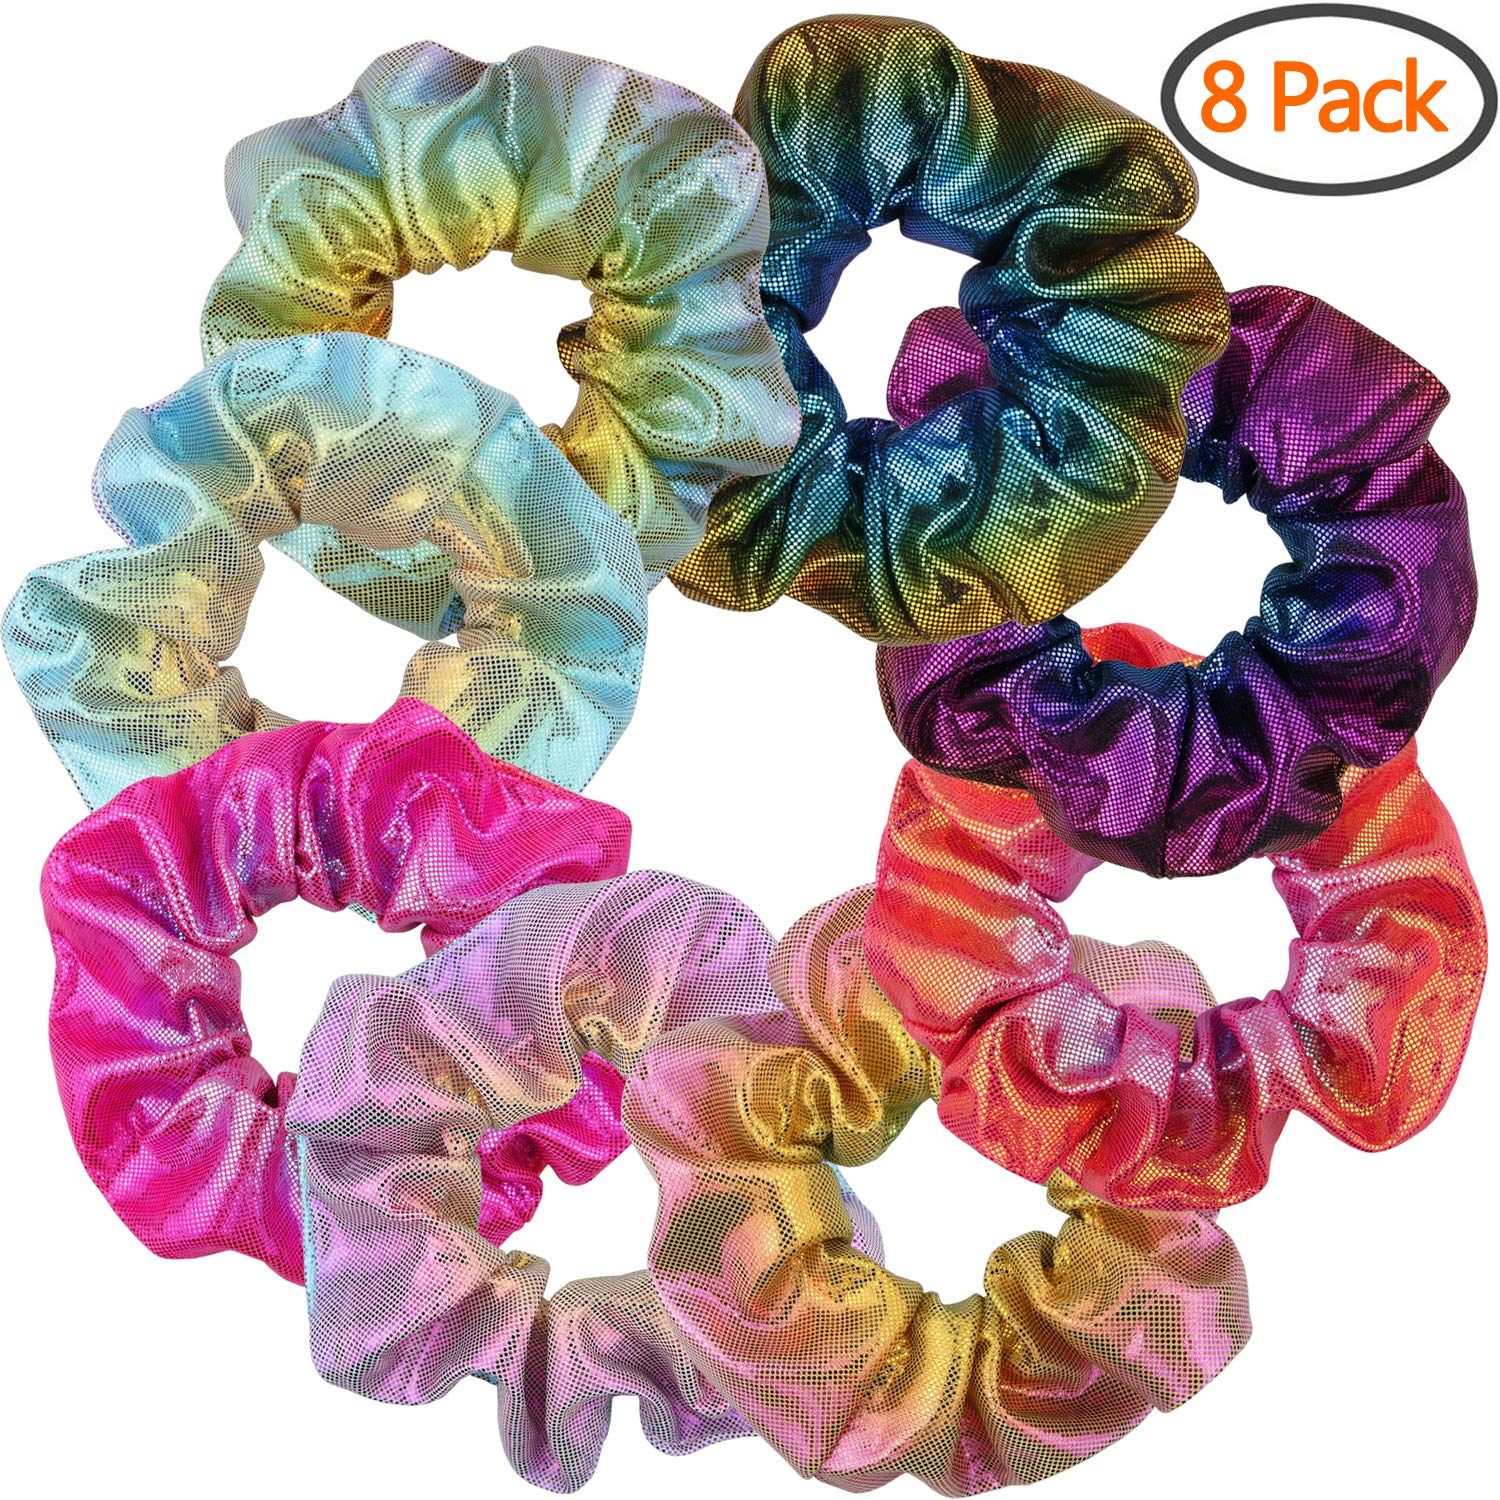 Shiny Metallic Scrunchies, BETITETO Women Girls Mermaid Hair Scrunchie Elastics Ponytail Holder for Gym Dance Party Club, Set of 8 by BETITETO (Image #1)